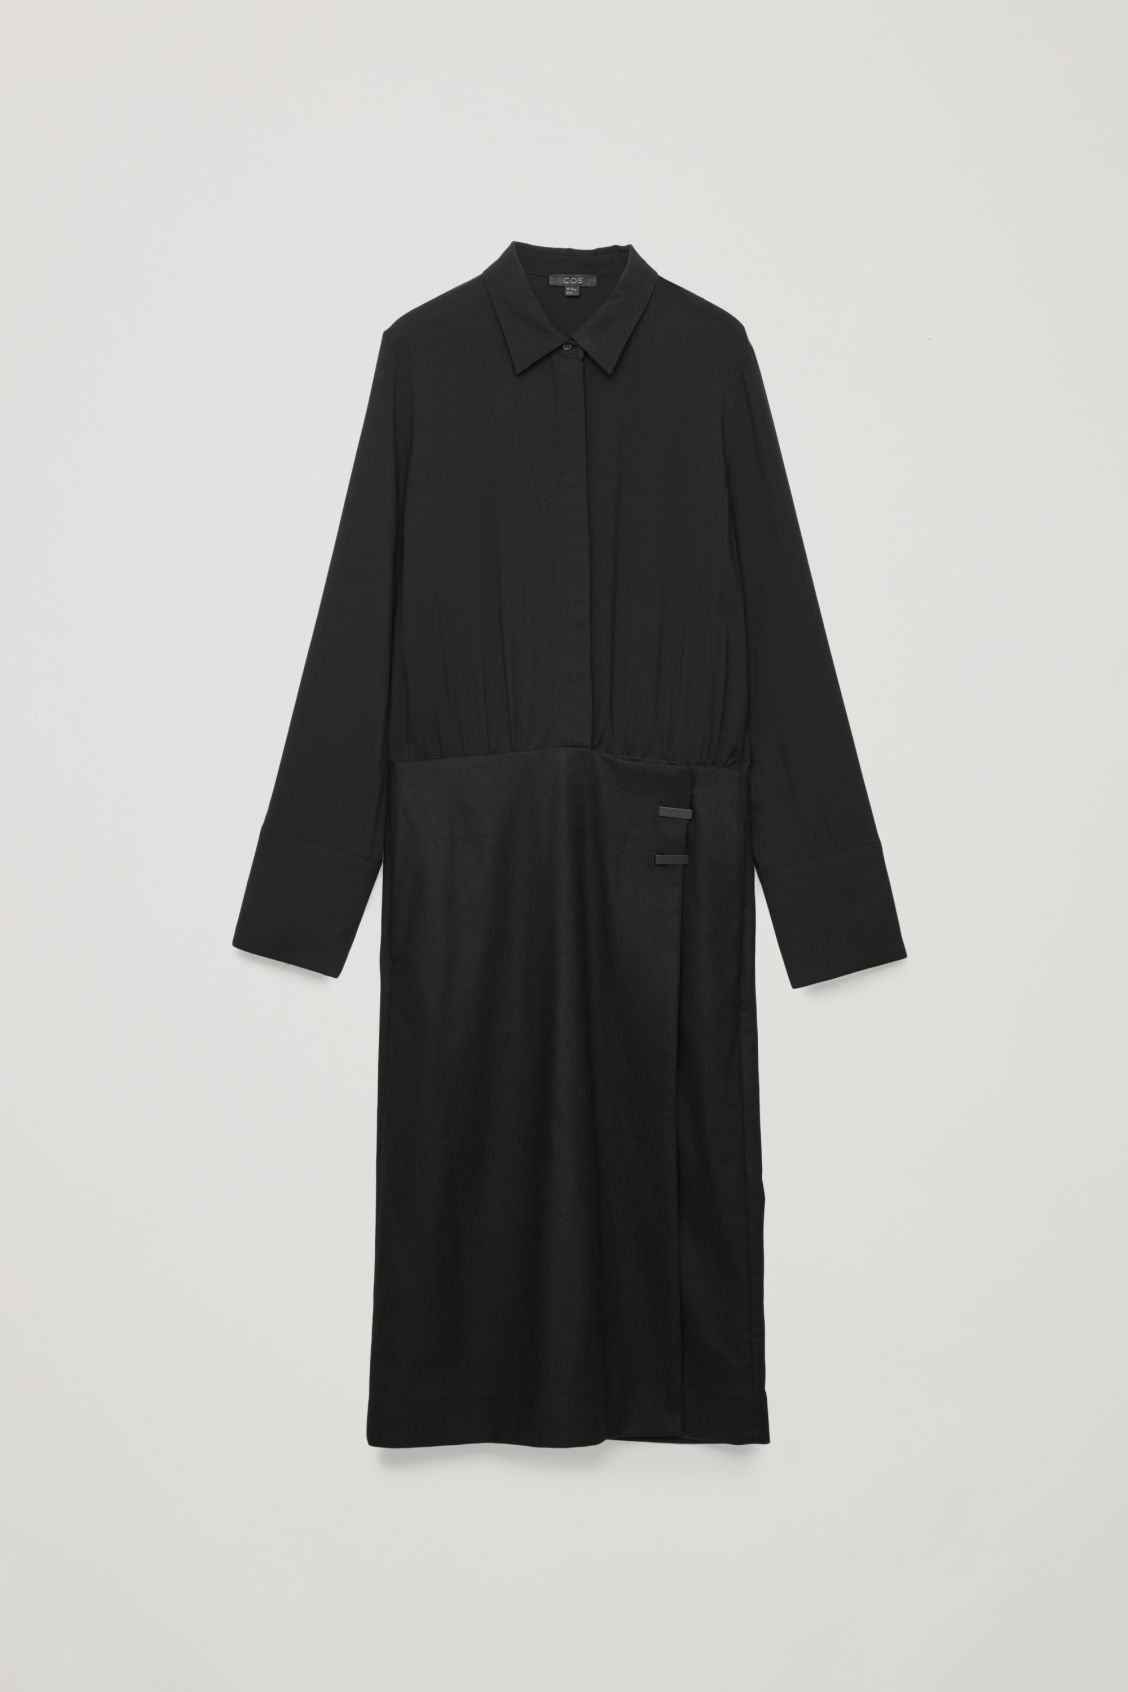 Front image of Cos long coat dress in black